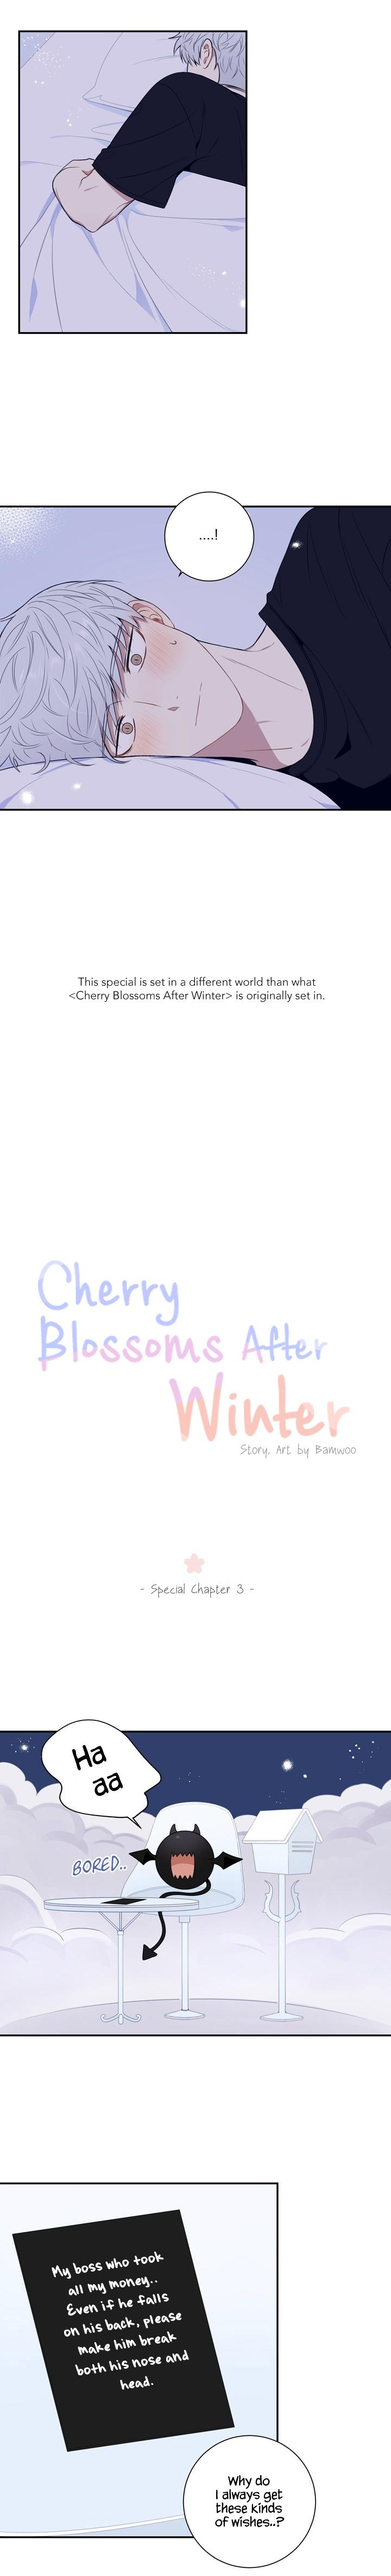 Cherry Blossoms After Winter Ch.94